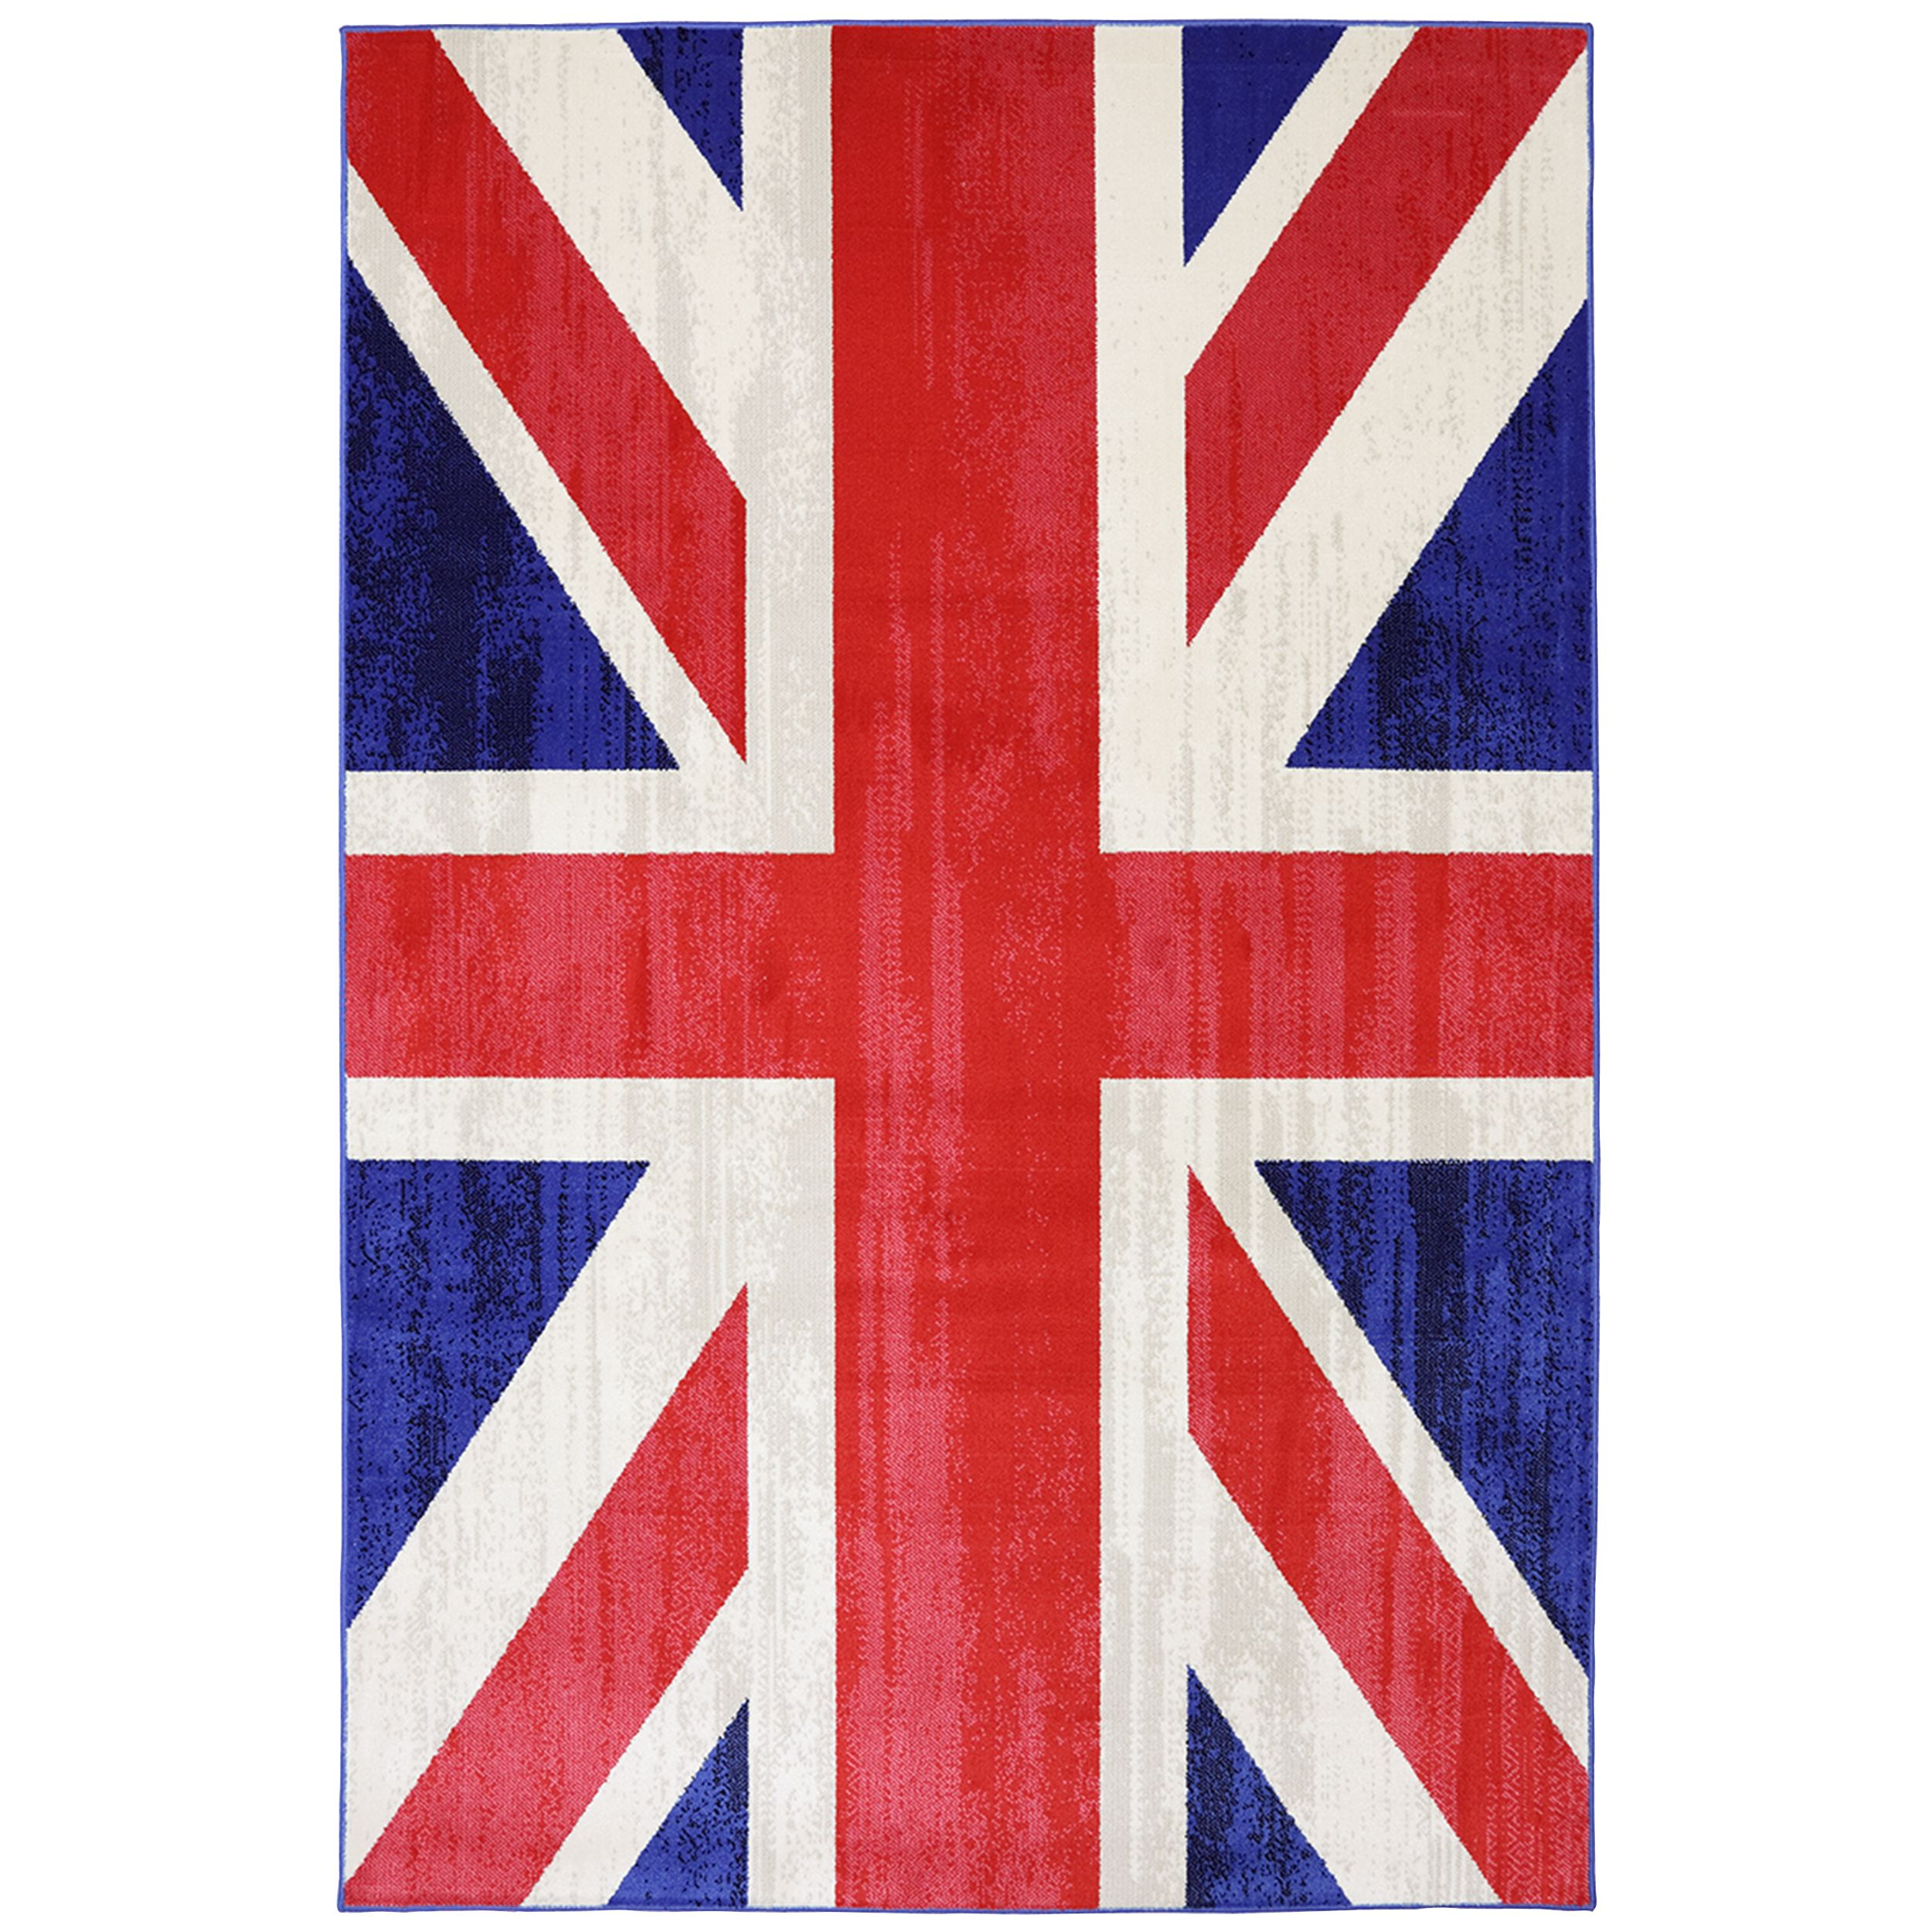 celebrate your inner patriot by adding this union jack rug to your